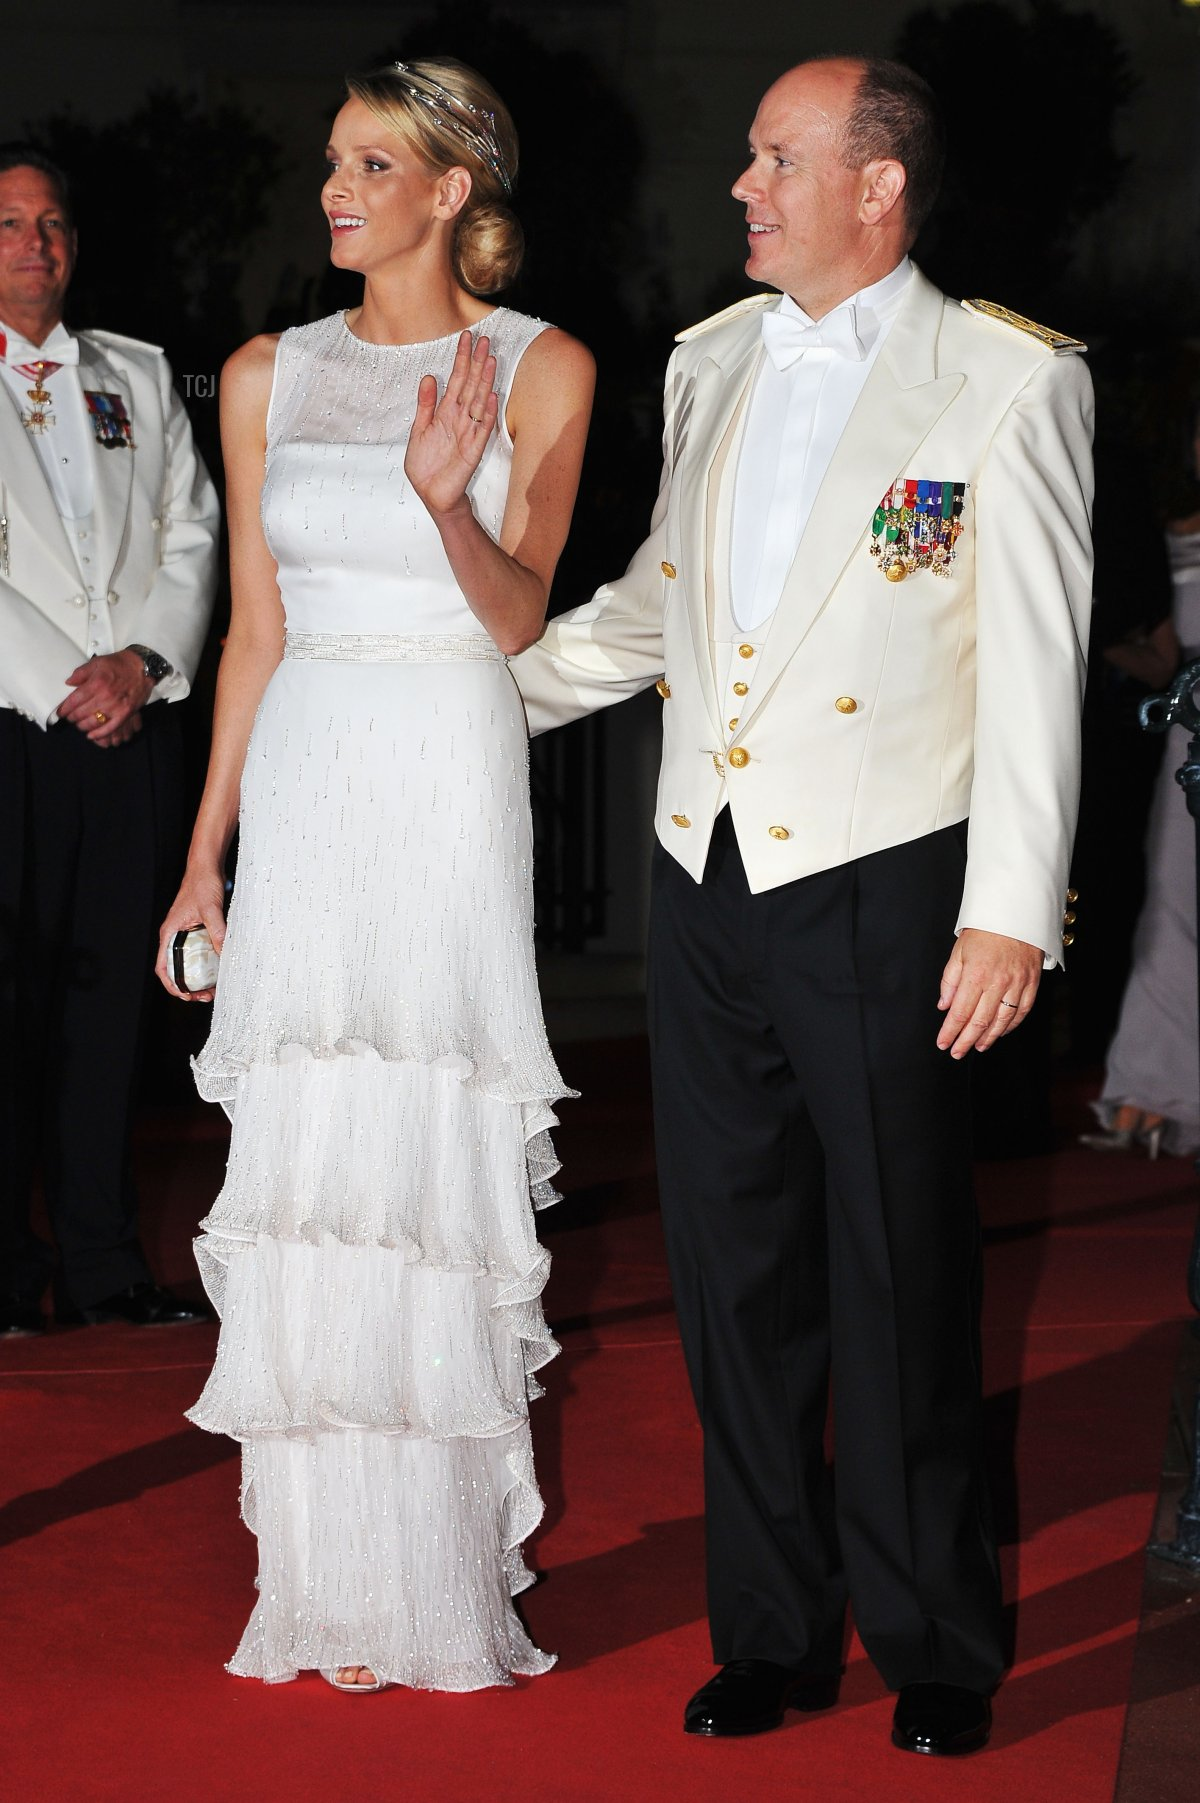 Princess Charlene of Monaco and Prince Albert II of Monaco attend a dinner at Opera terraces after their religious wedding ceremony on July 2, 2011 in Monaco